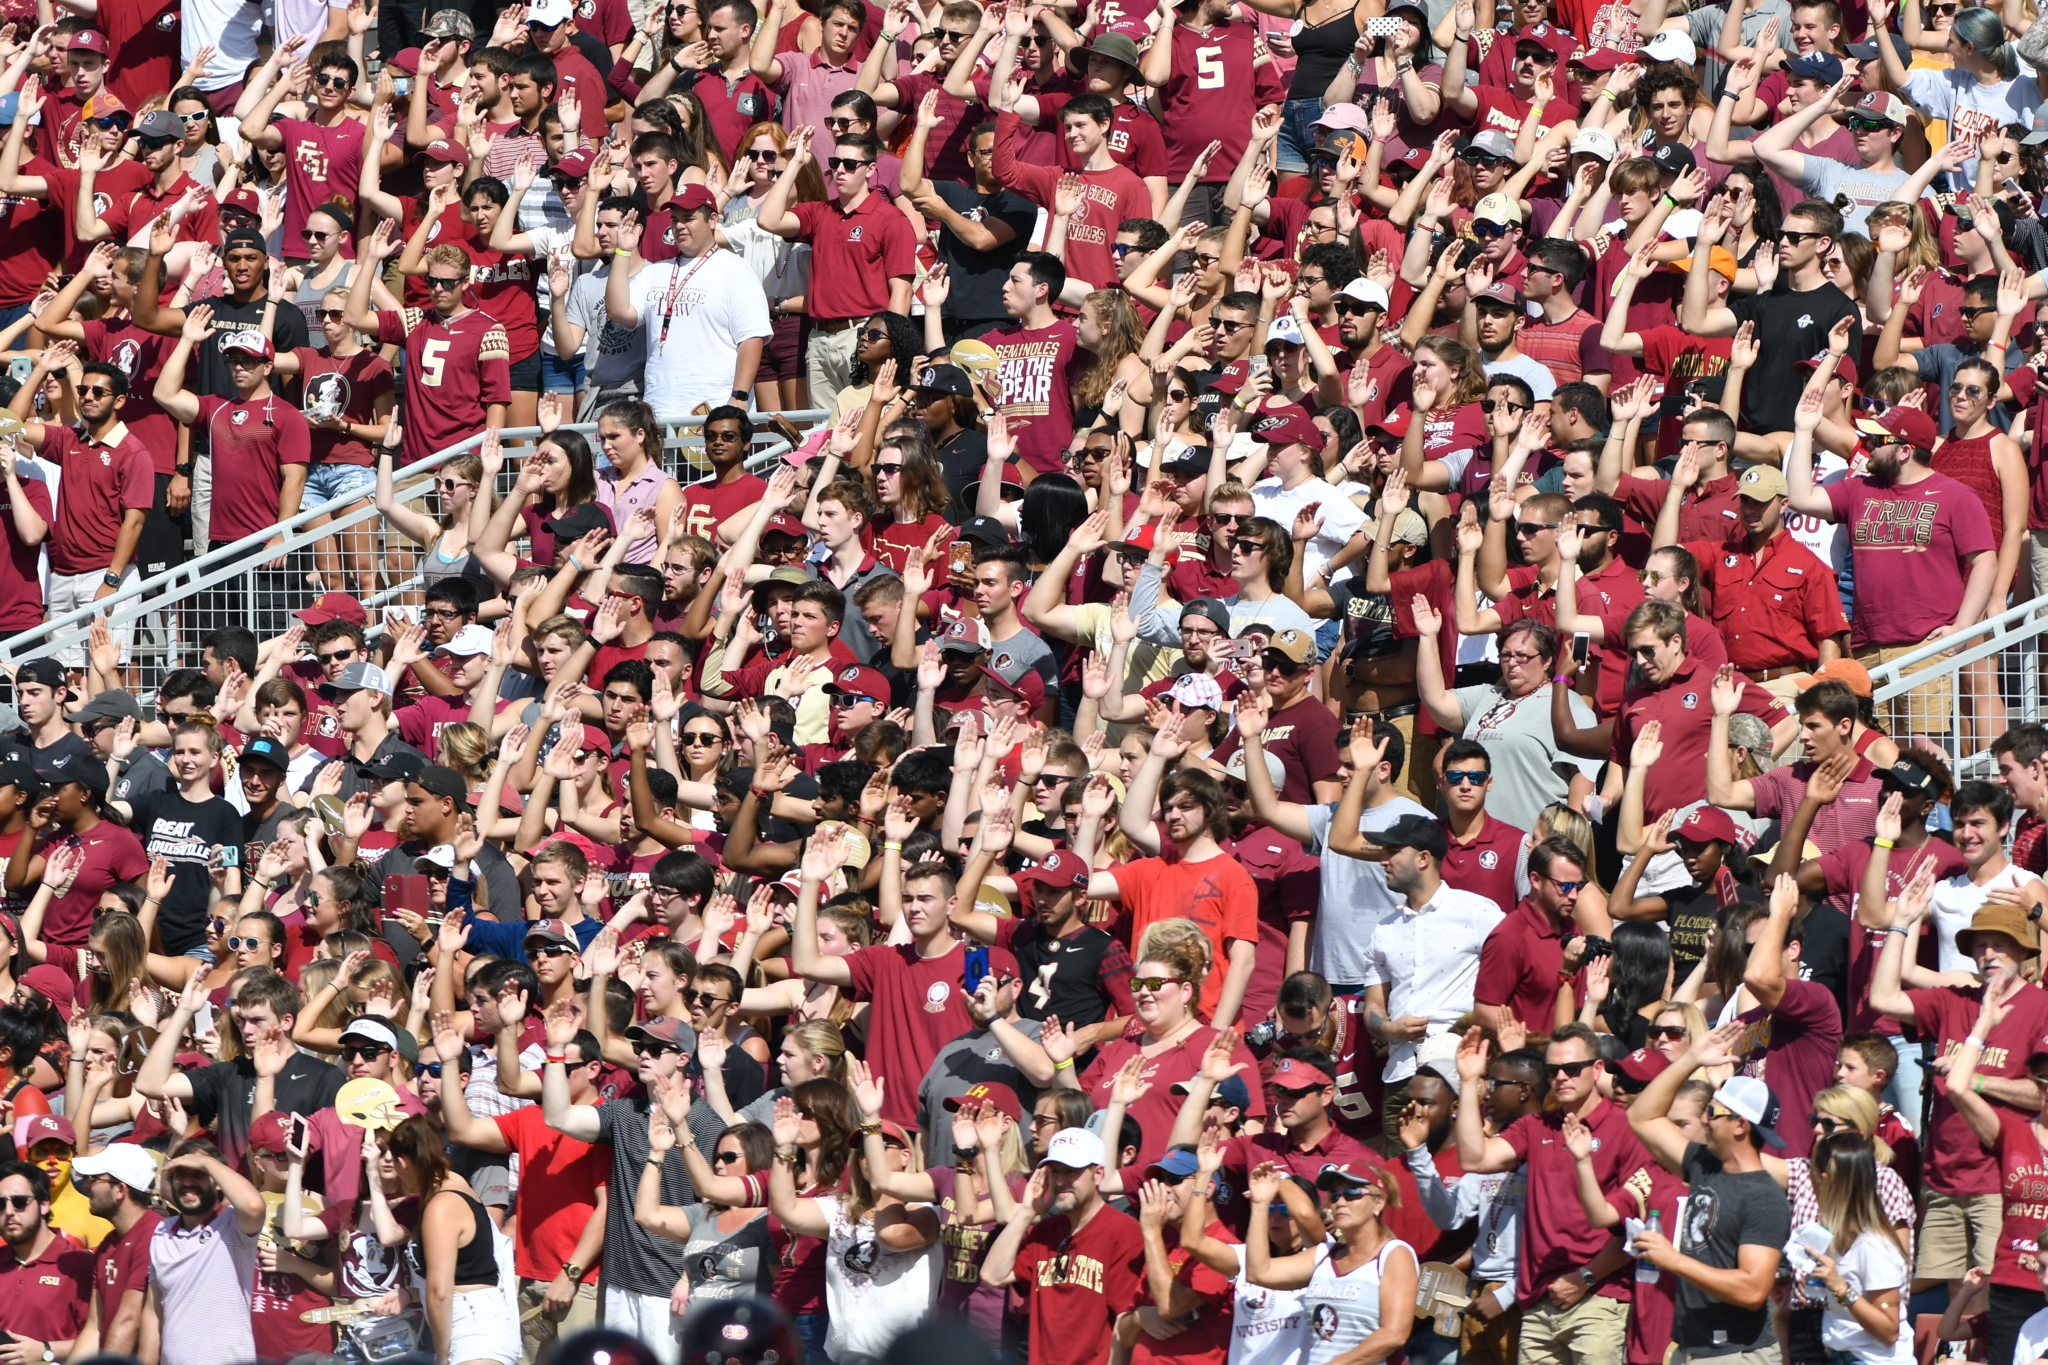 FSU crowds